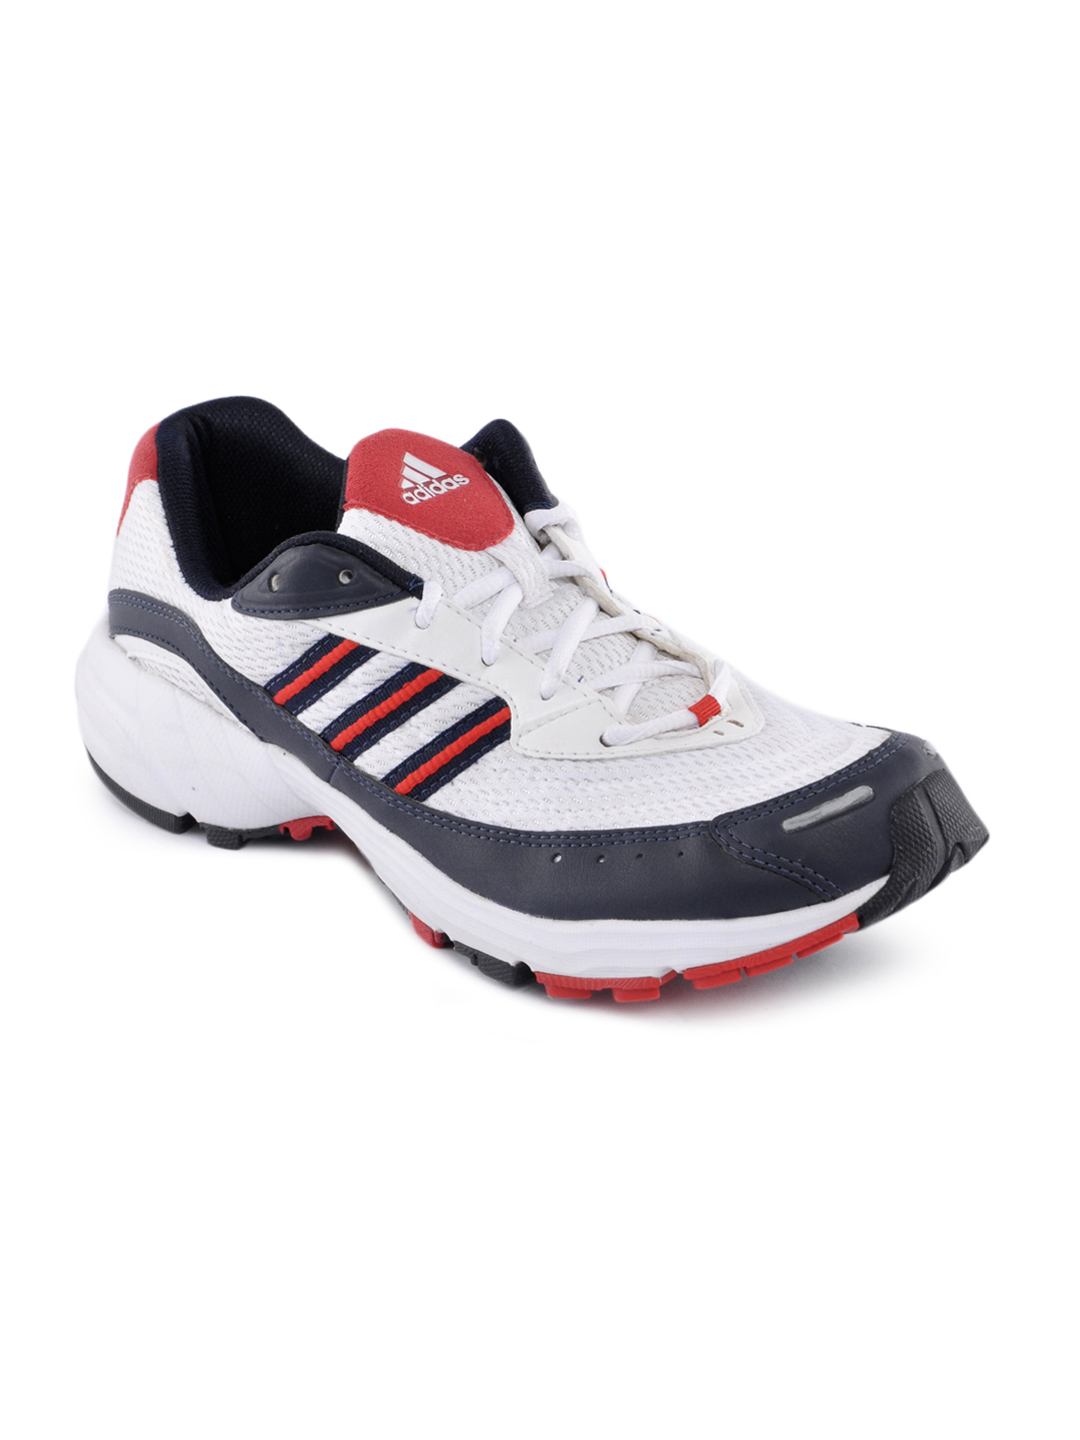 ee5a48c46 Sports Shoes, buy Sports Shoes online in India - KhoobDeal.in